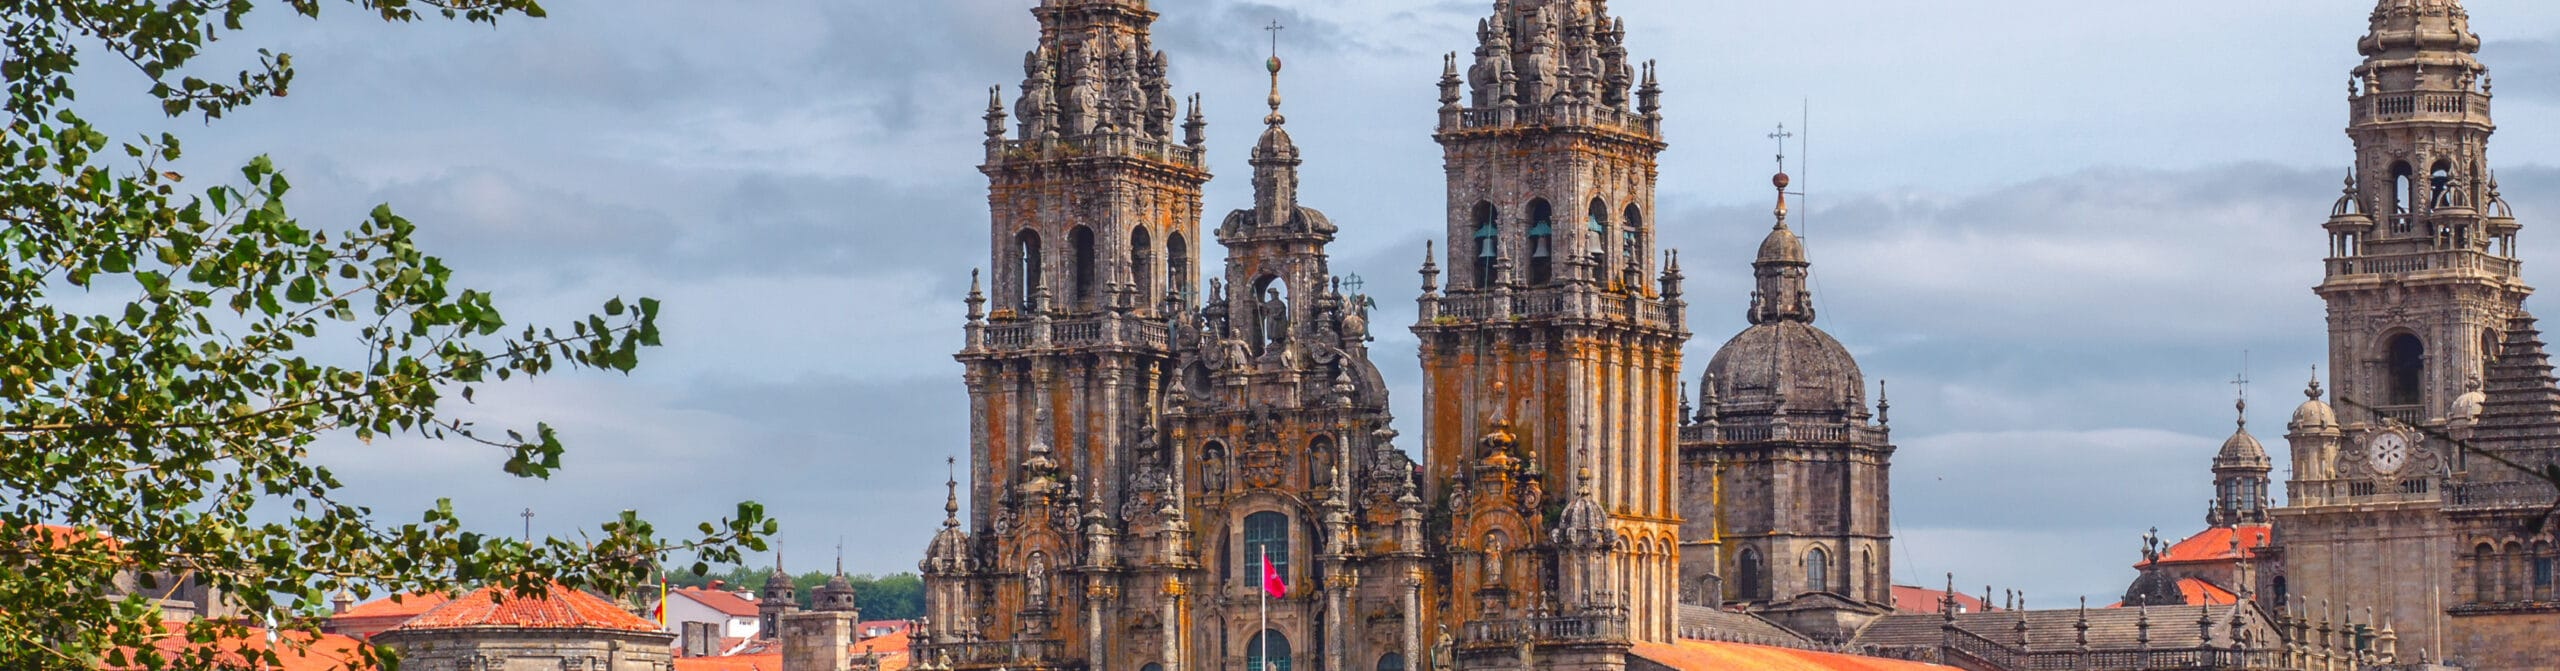 The Cathedral of Santiago de Compostela - the destination of Xacobeo 2021 - is seen from afar